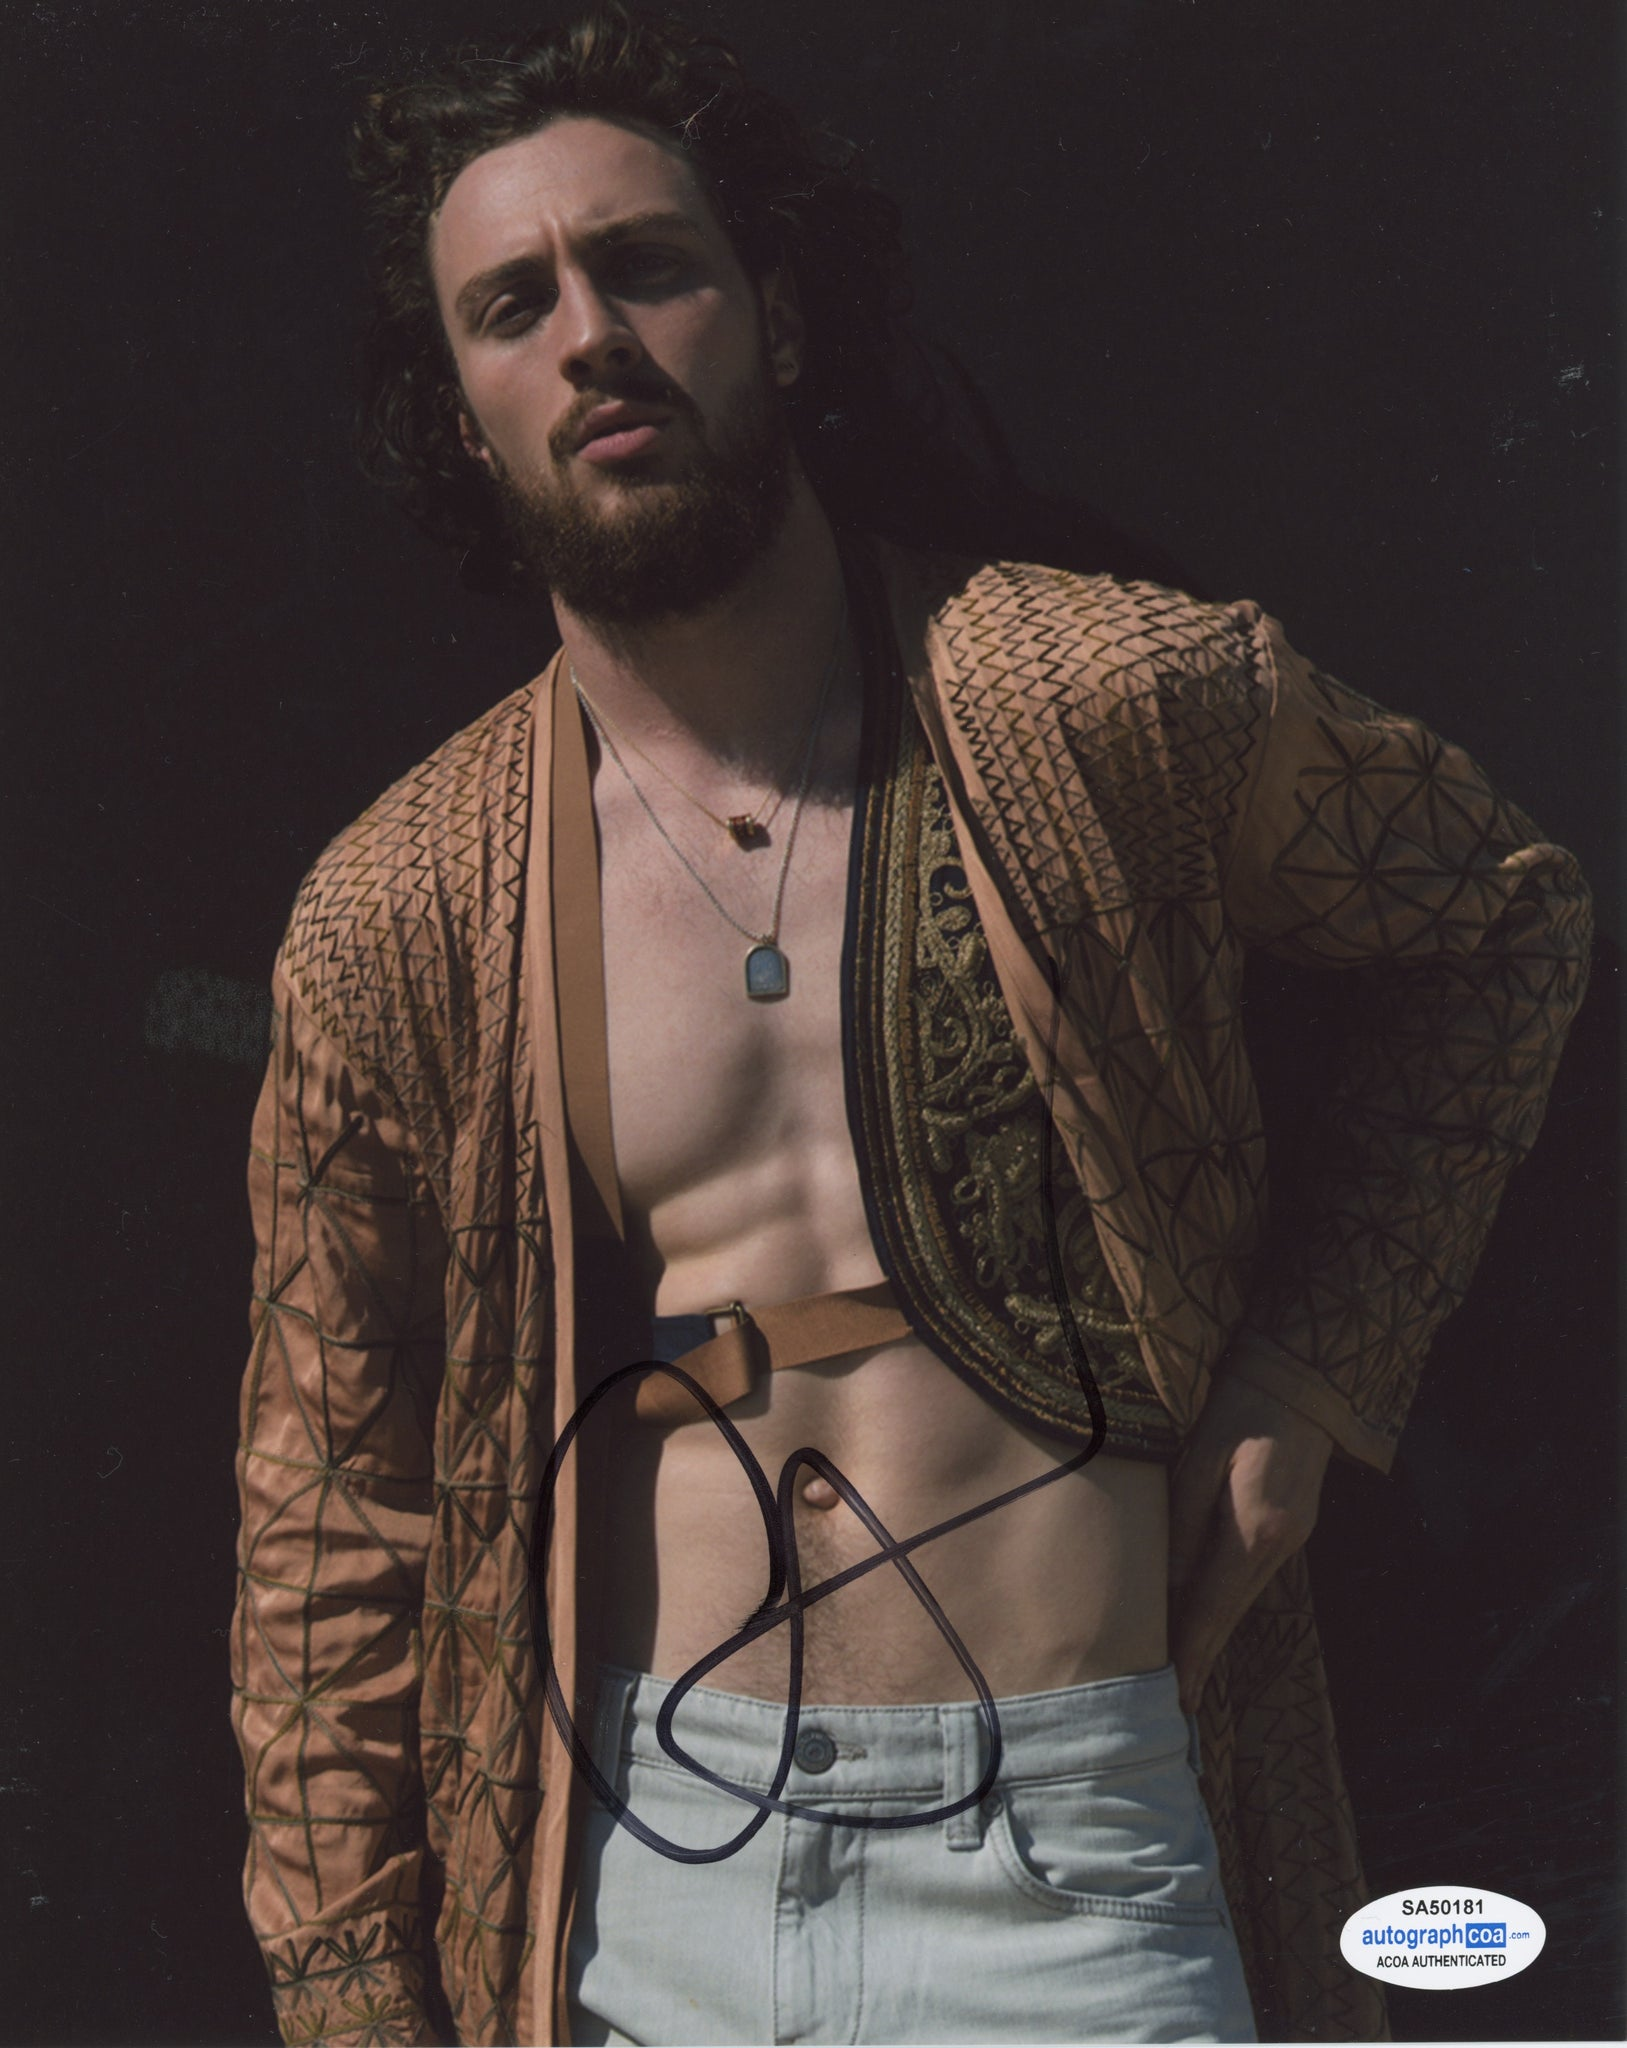 Aaron Taylor Johnson Quicksilver Marvel Avengers Signed Autograph 8x10 Photo ACOA